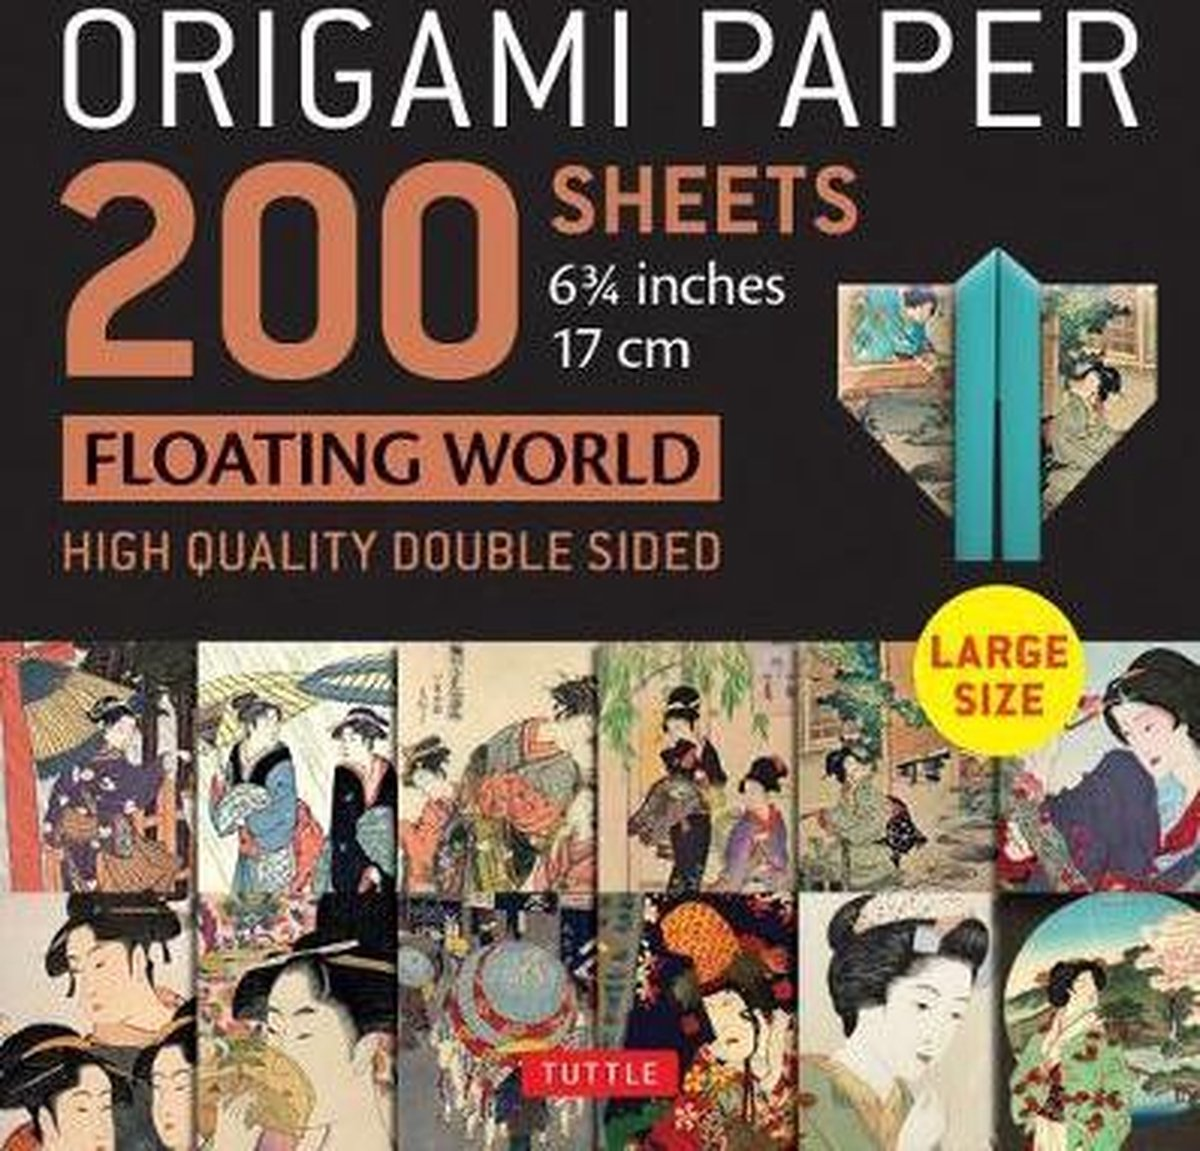 Origami Paper 200 sheets Floating World 6 3/4 (17 cm): Tuttle Origami Paper